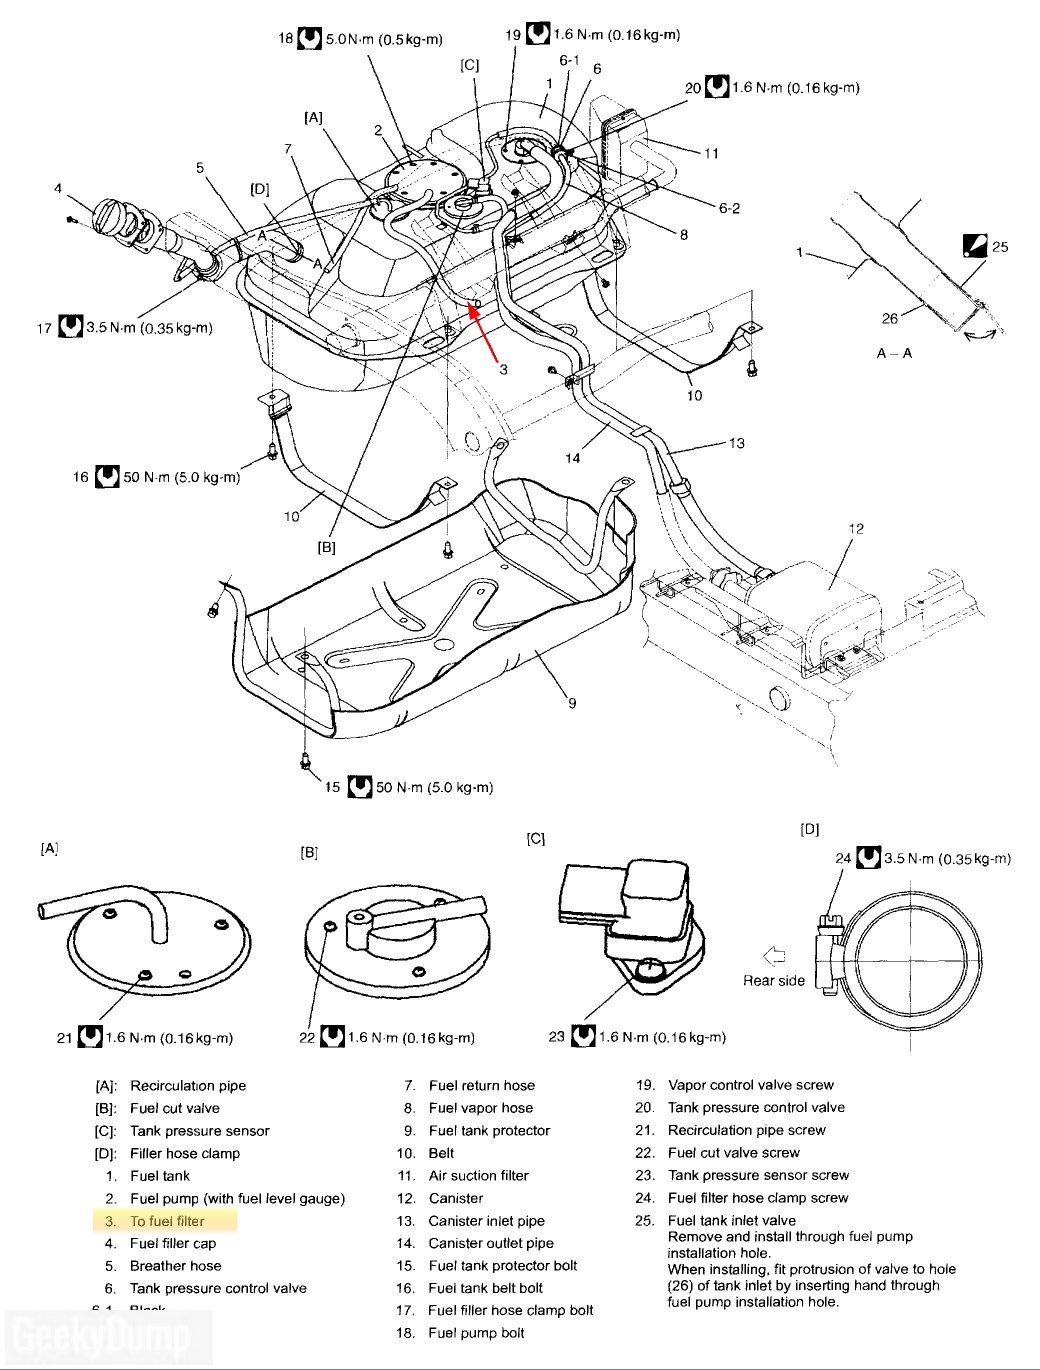 toyota 4k engine diagram  toyota  auto wiring diagram